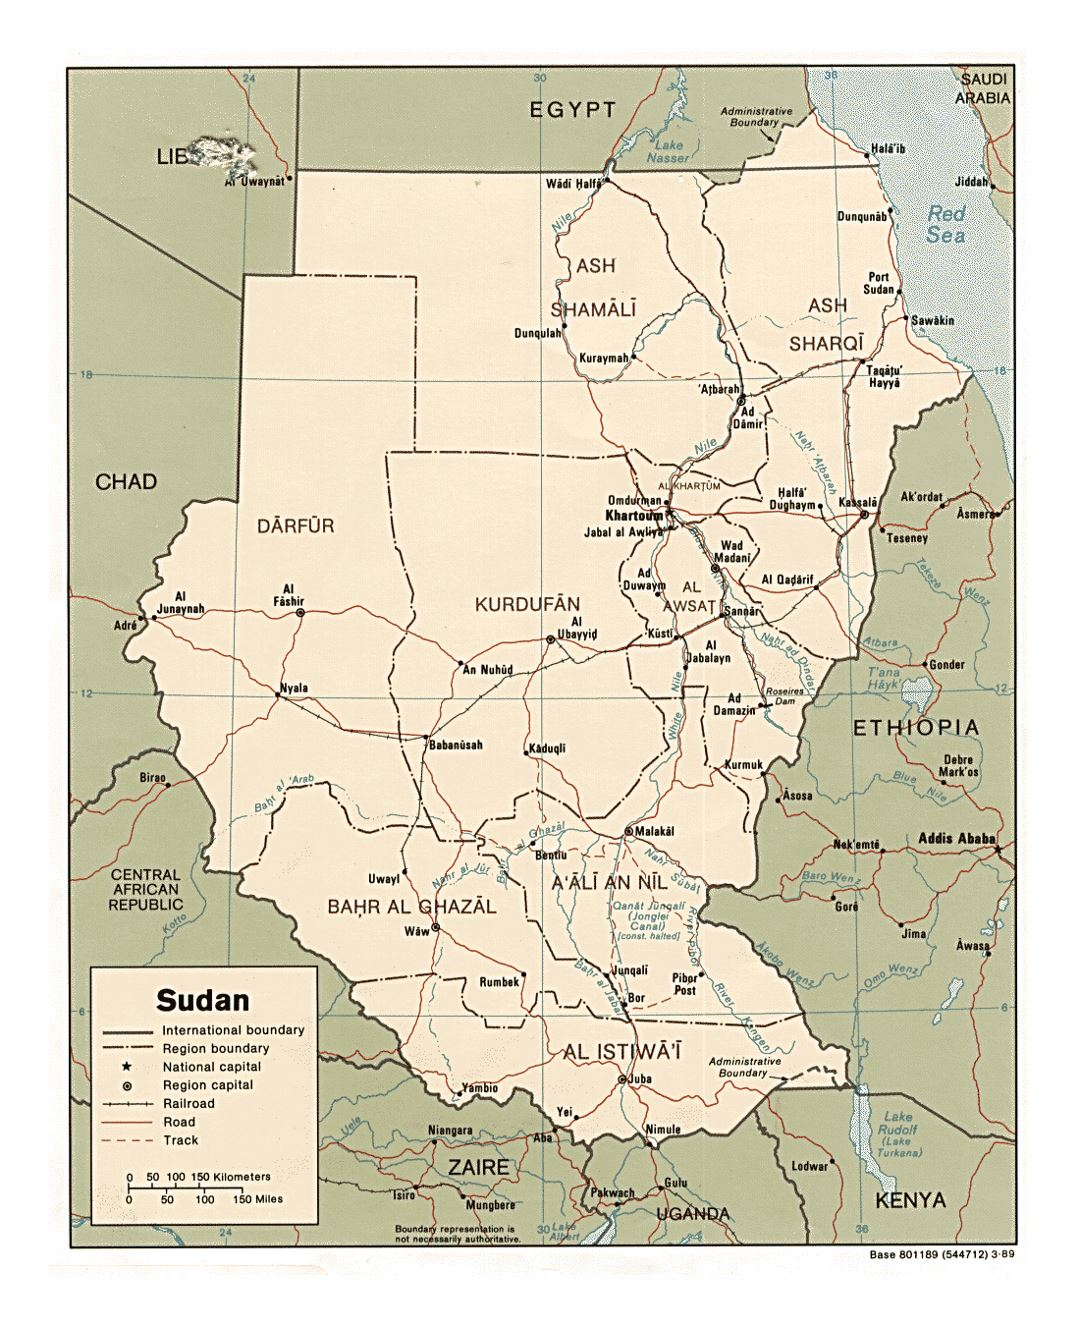 Detailed Political And Administrative Map Of Sudan With